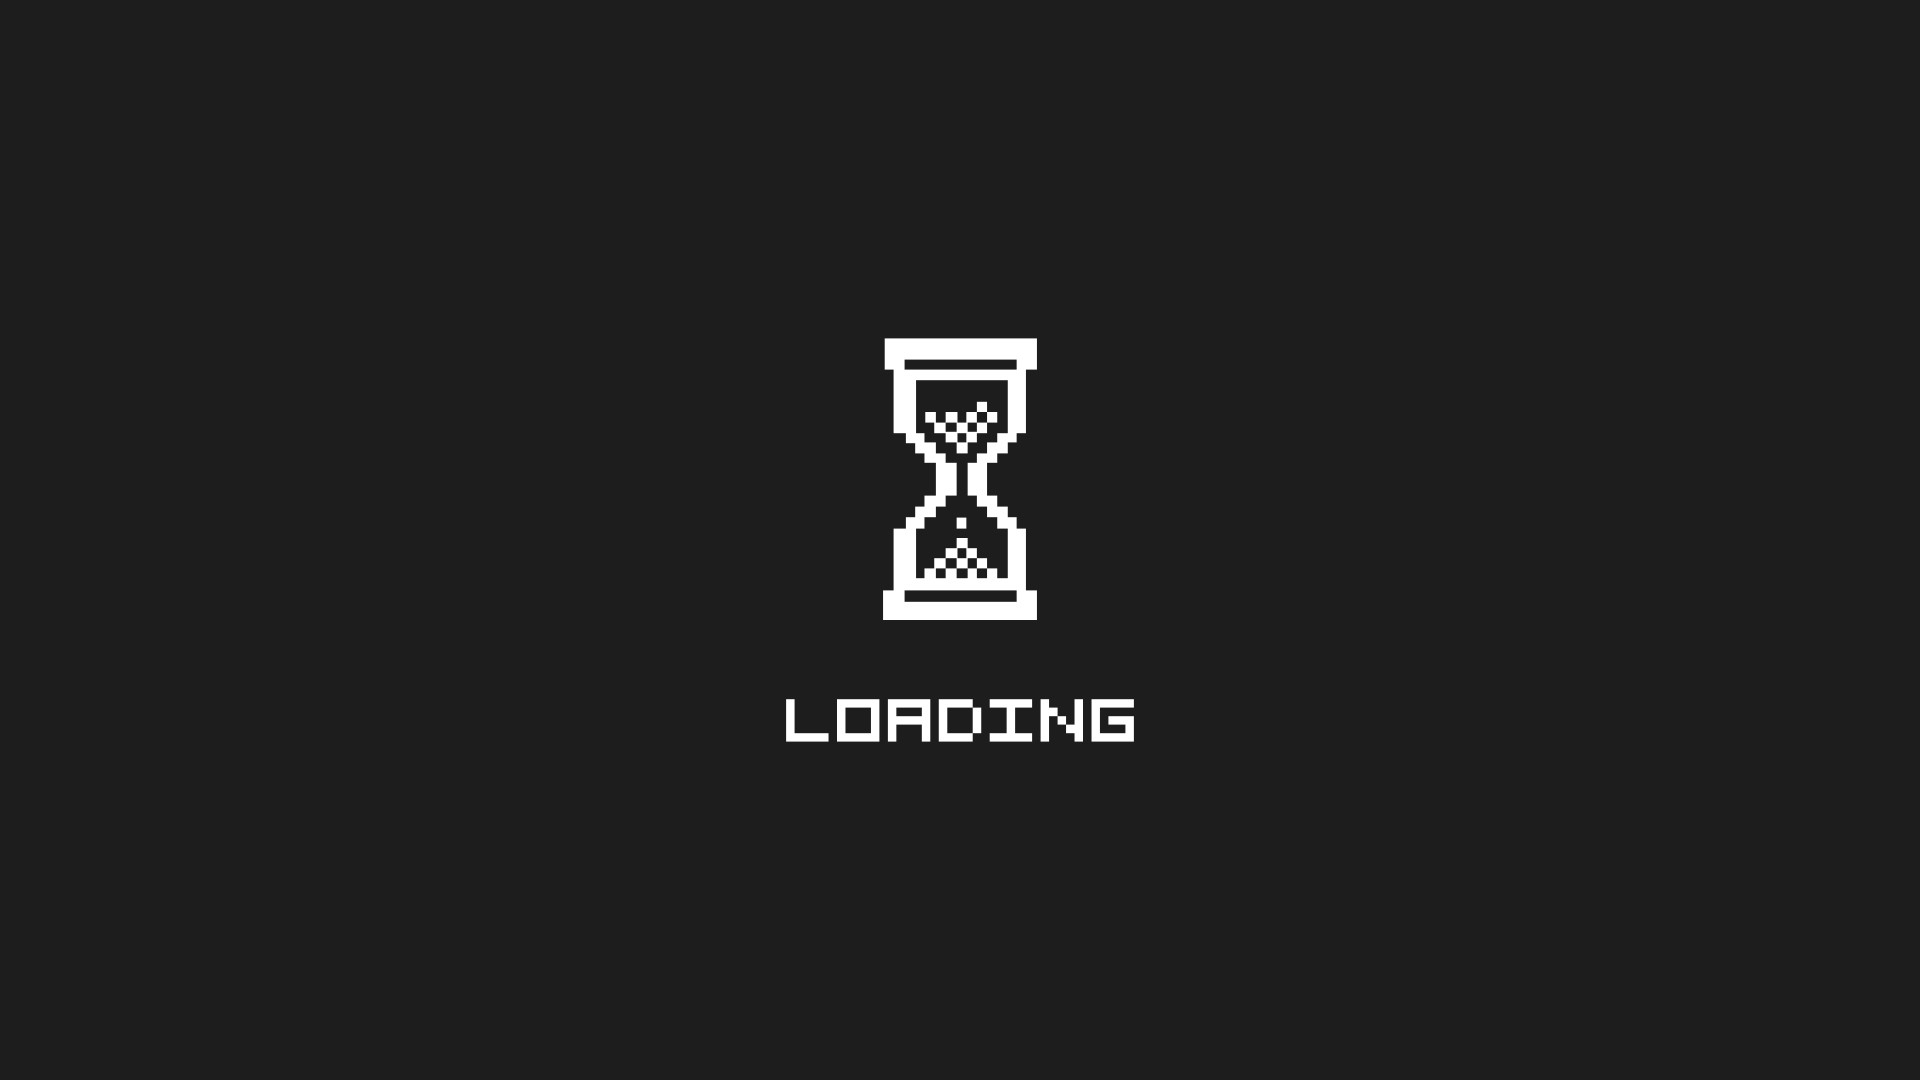 Loading Wallpapers-31